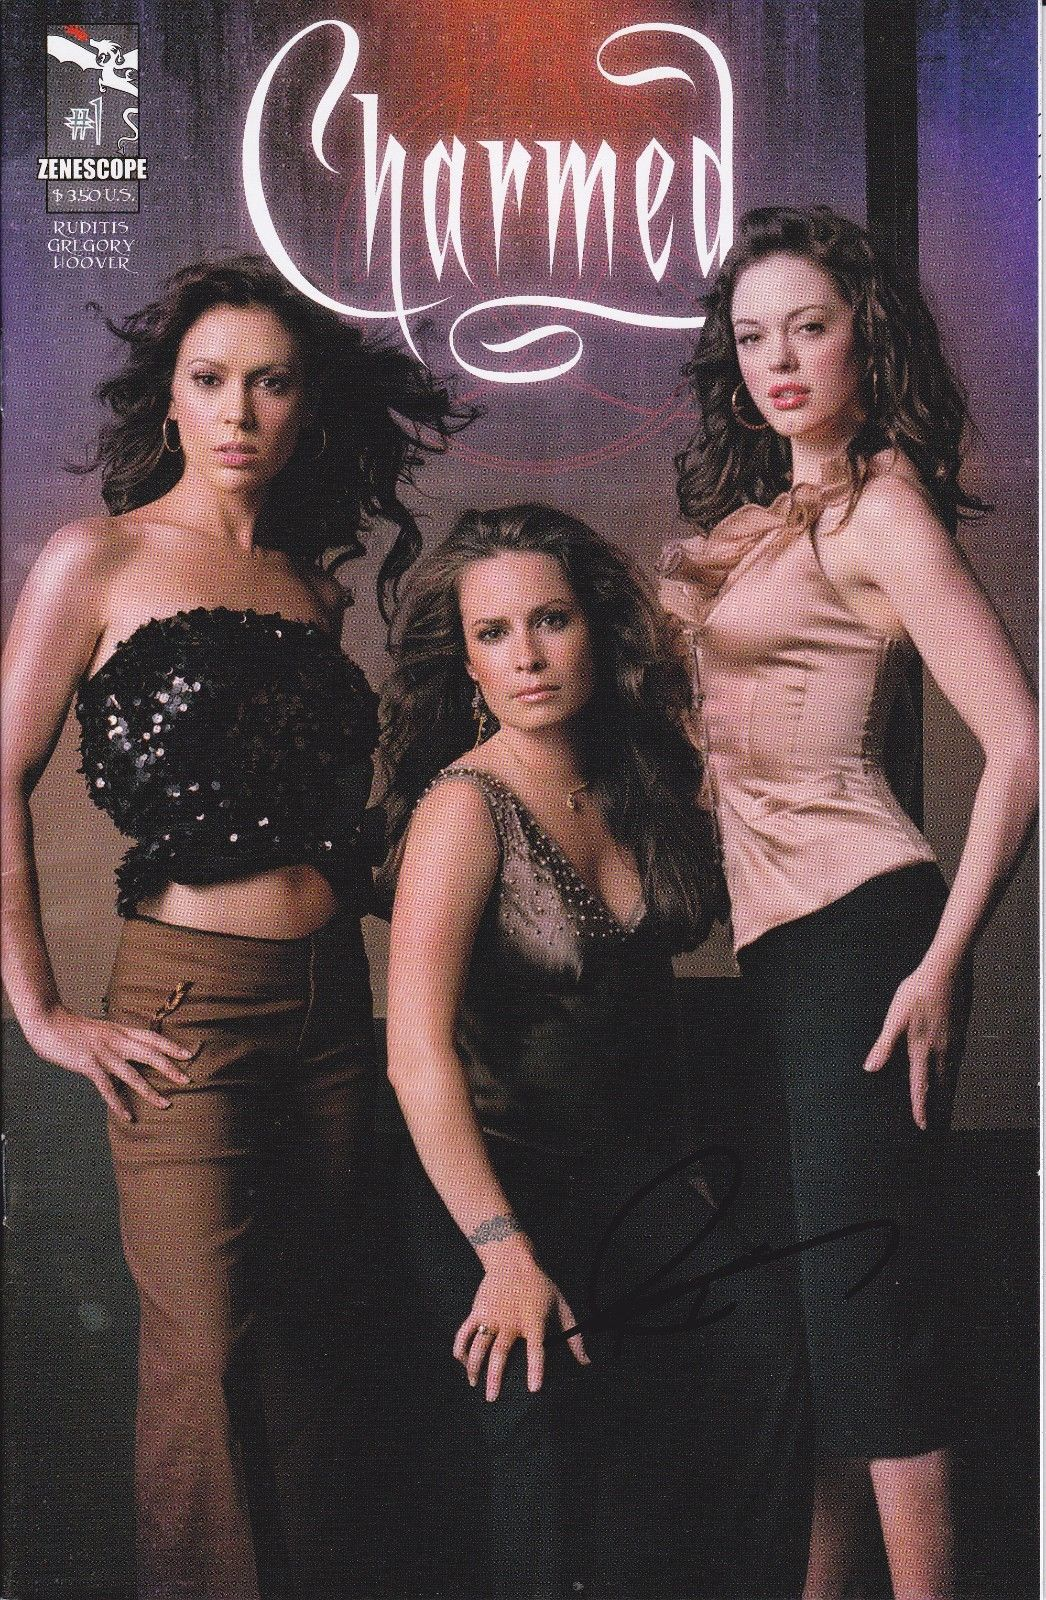 Charmed #1 - Ruditis/Gregory/Hoover - Signed 2010 Zenescope Photo Variant